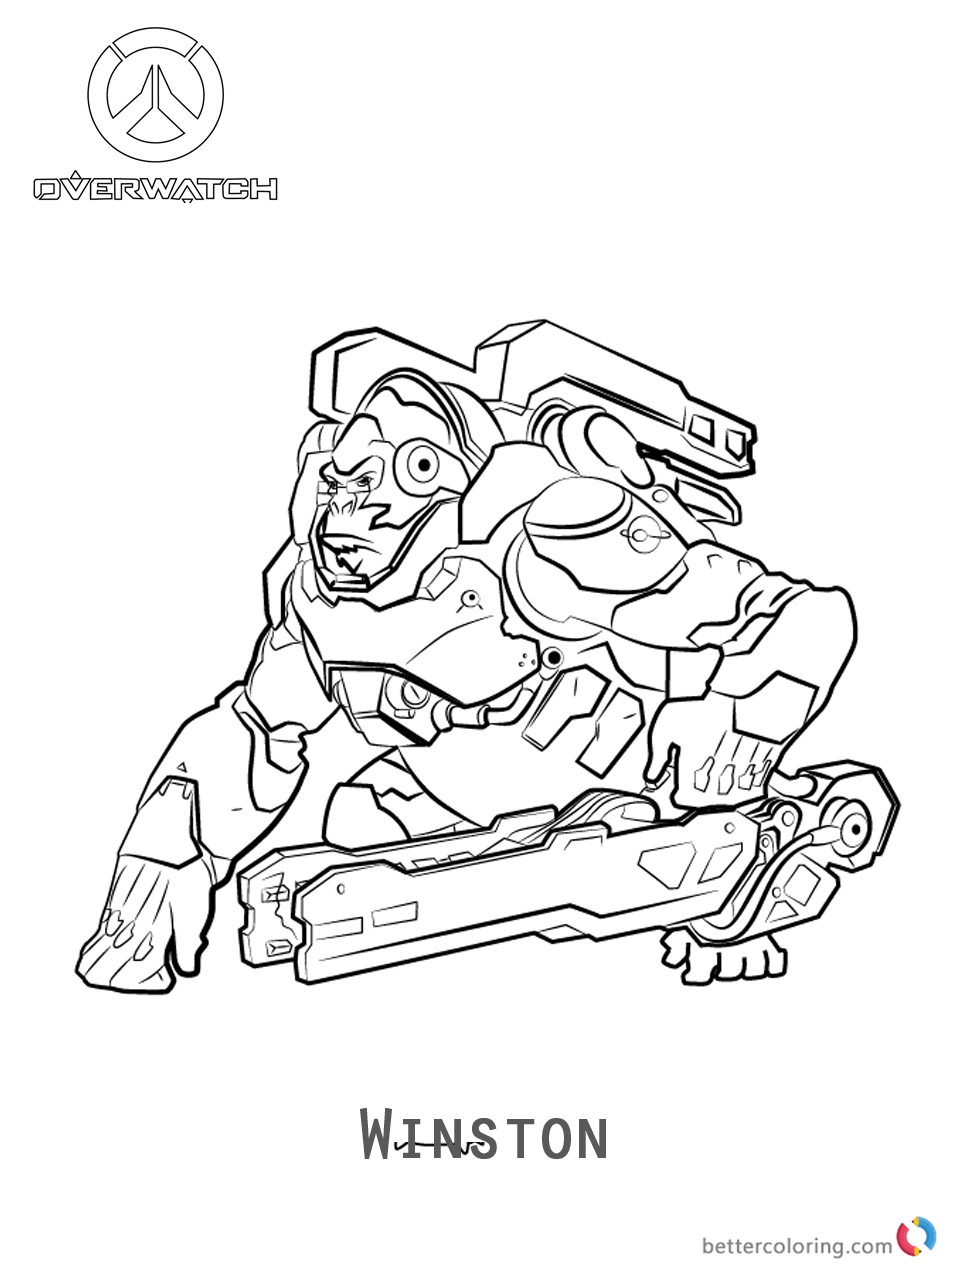 Winston From Overwatch Coloring Pages Free Printable